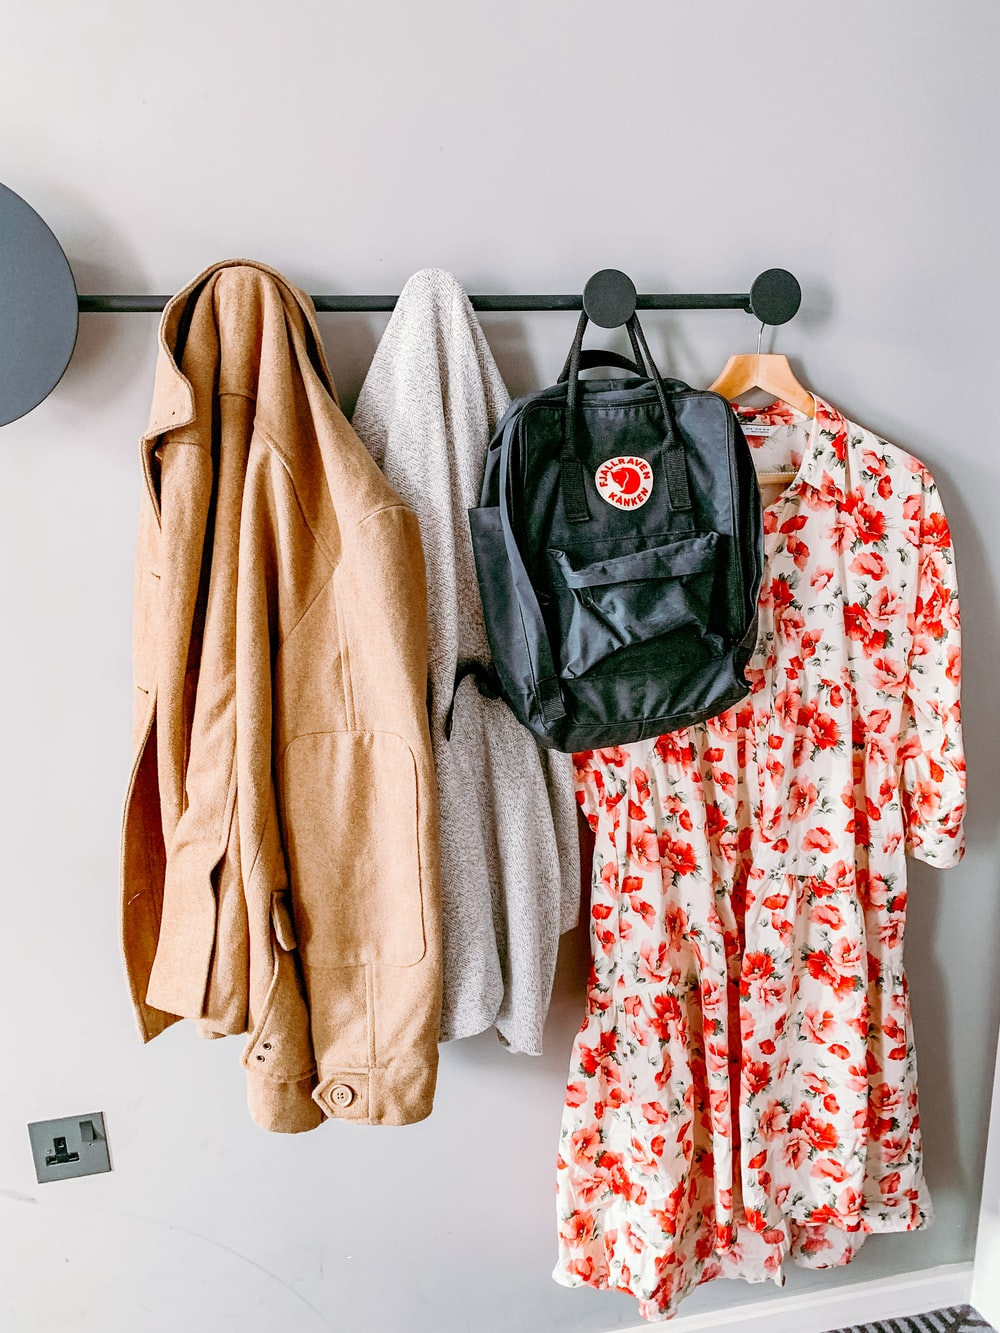 coat, sweater, backpack, and floral dress hanging on wall hanger